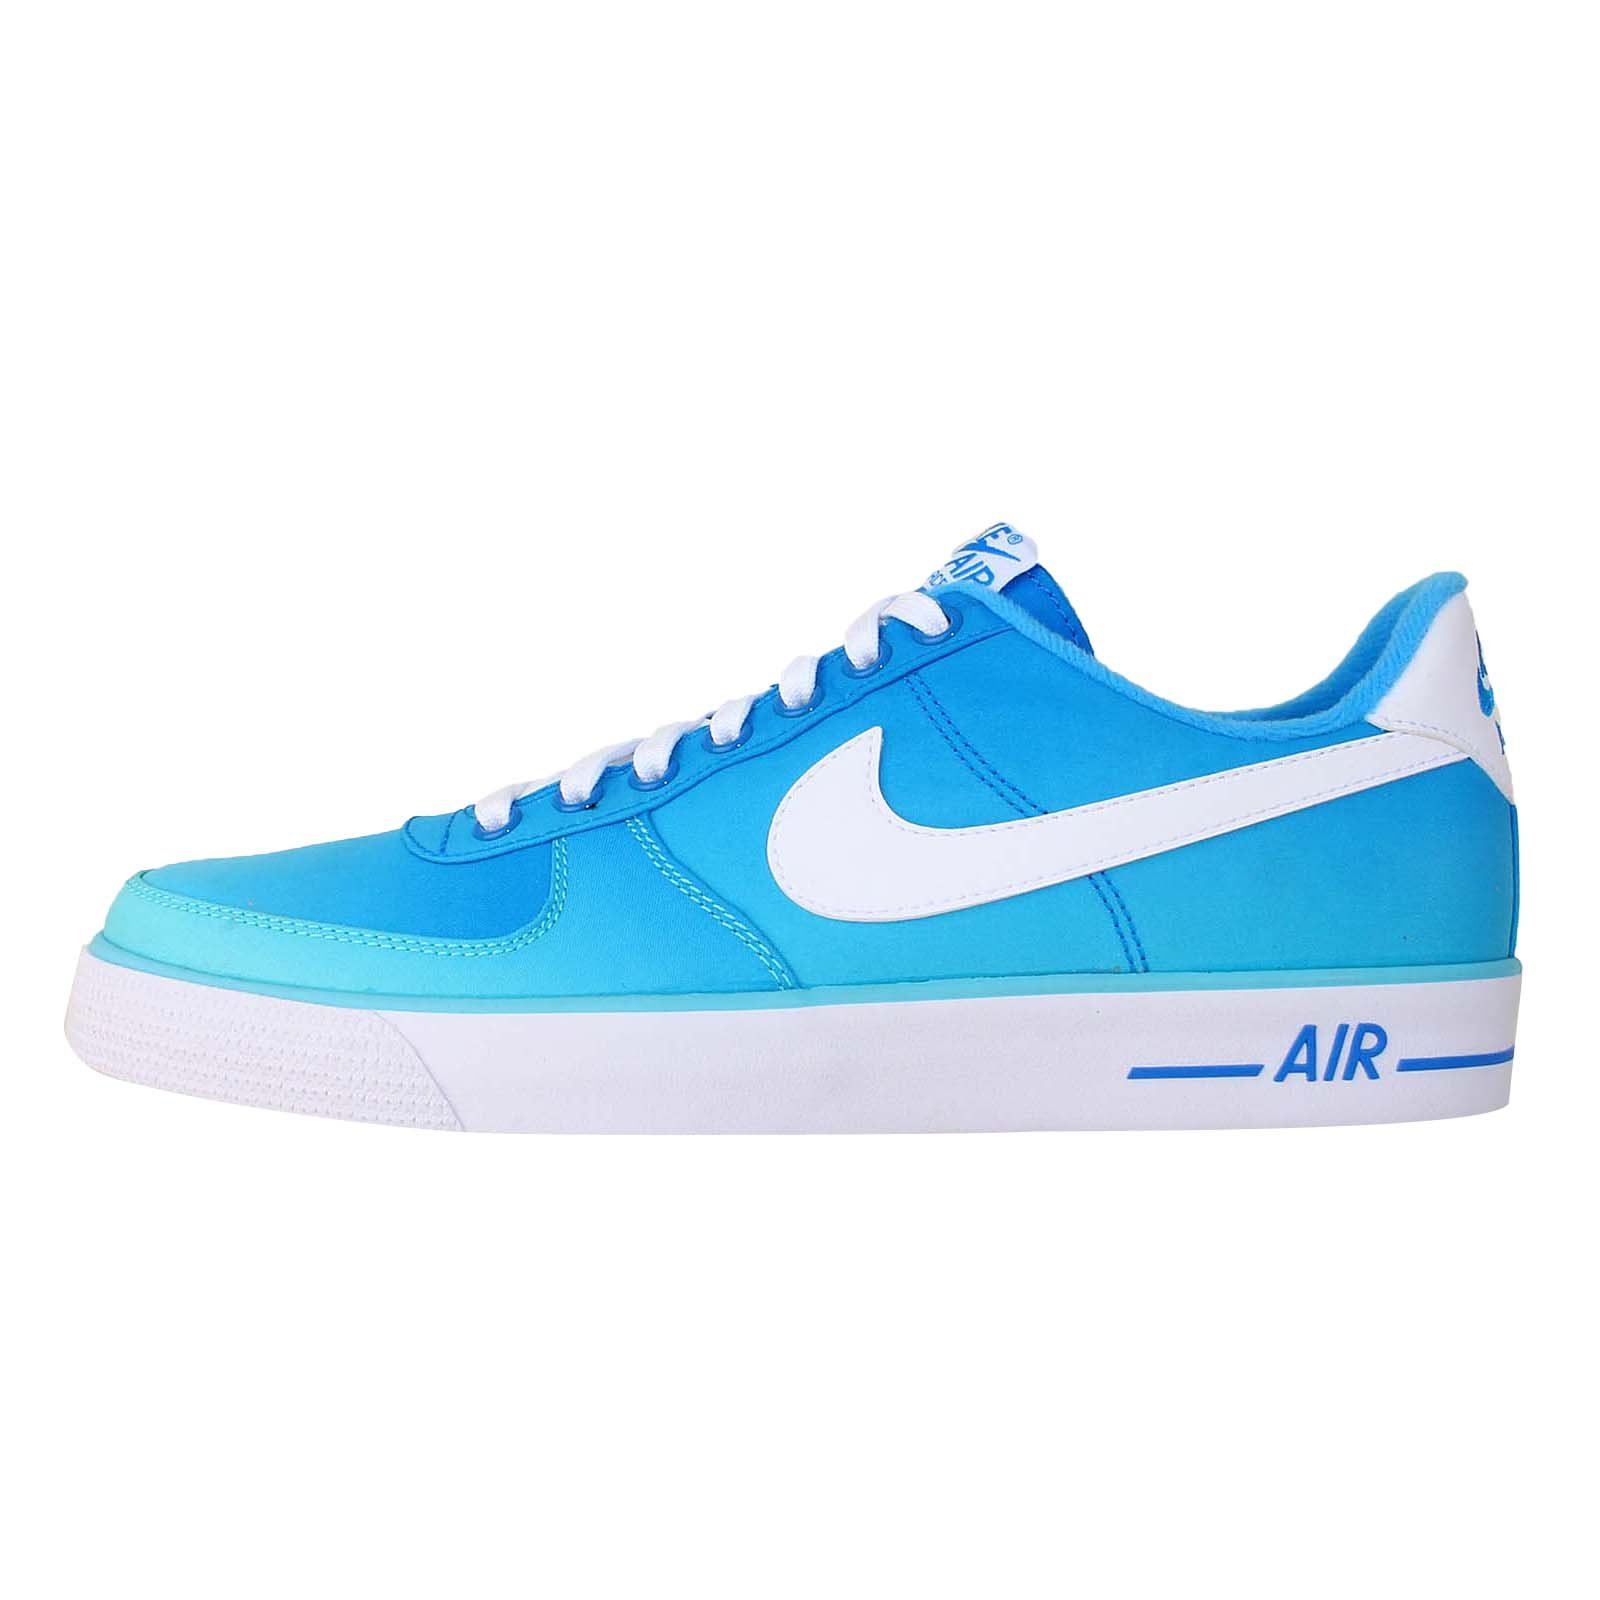 Nike Men's Air Force 1 AC br Basketball Shoes-Polarized Blue/White